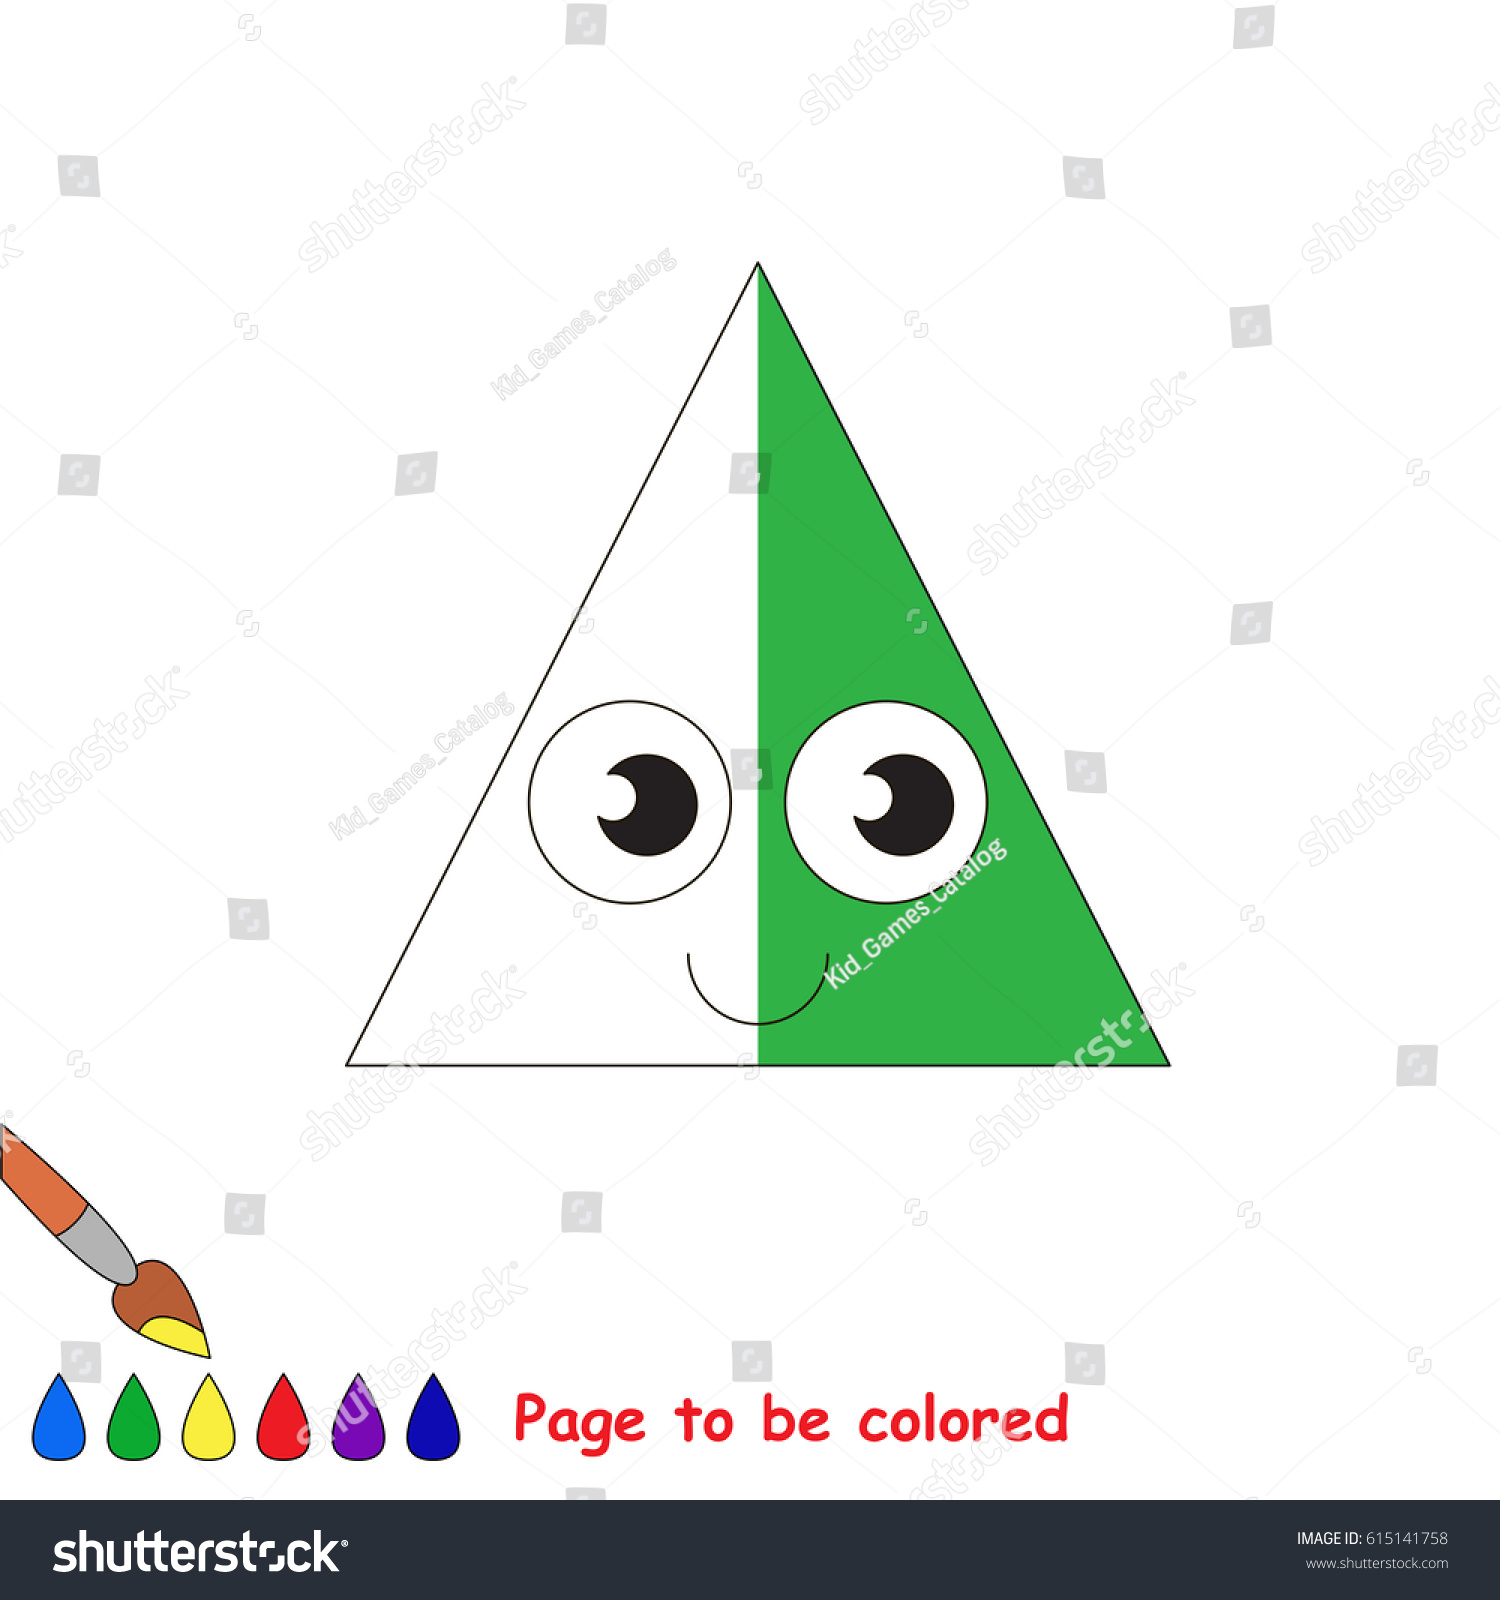 Half Colored Geometric Form Coloring Book Stock Vector 615141758 ...